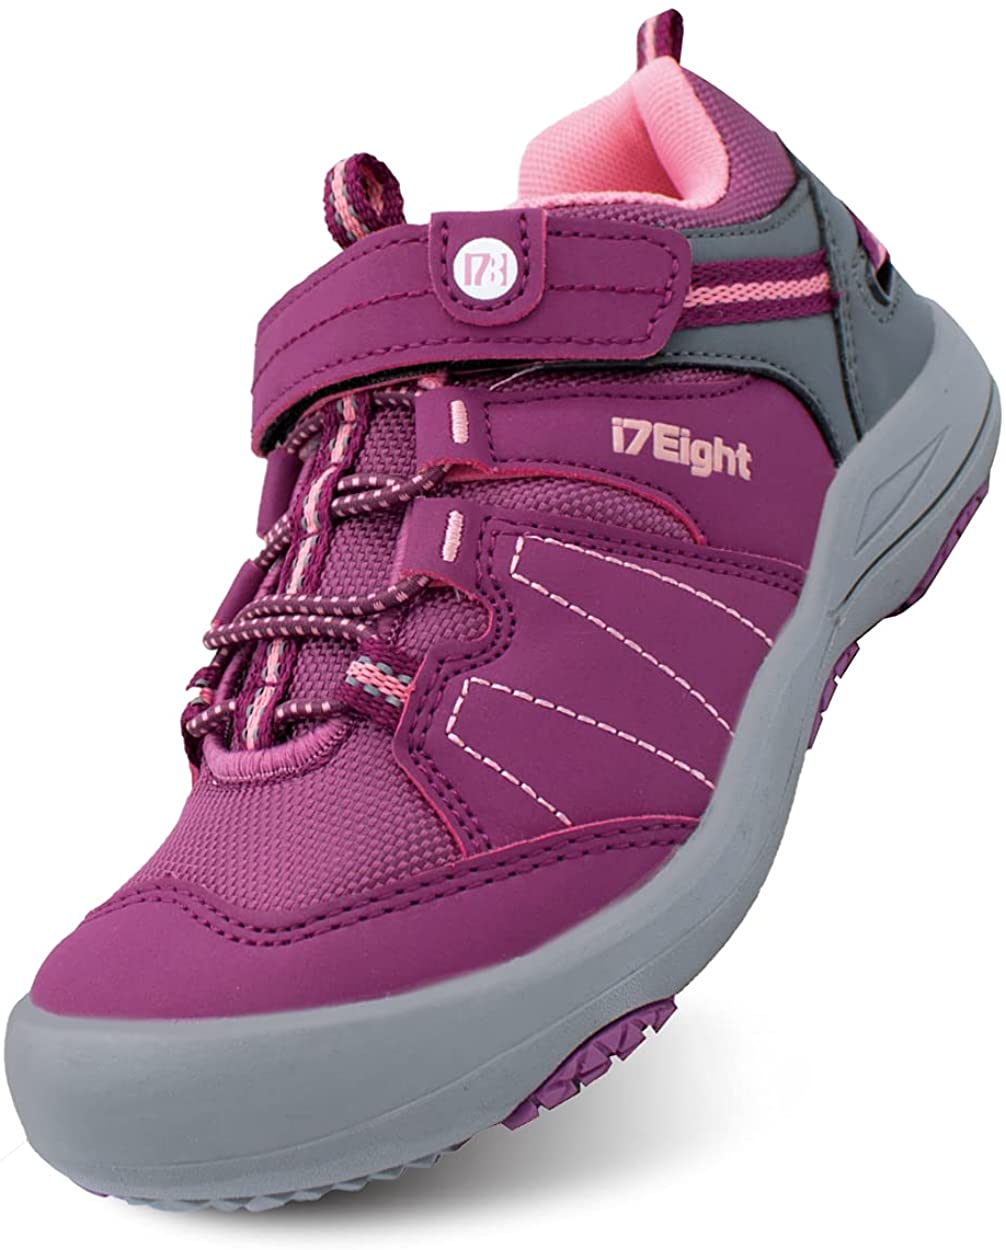 i78 Low Top Kids Boys Mesa Topics on TV Mall Girls Sport Shoes Breathable Hiking Synthe